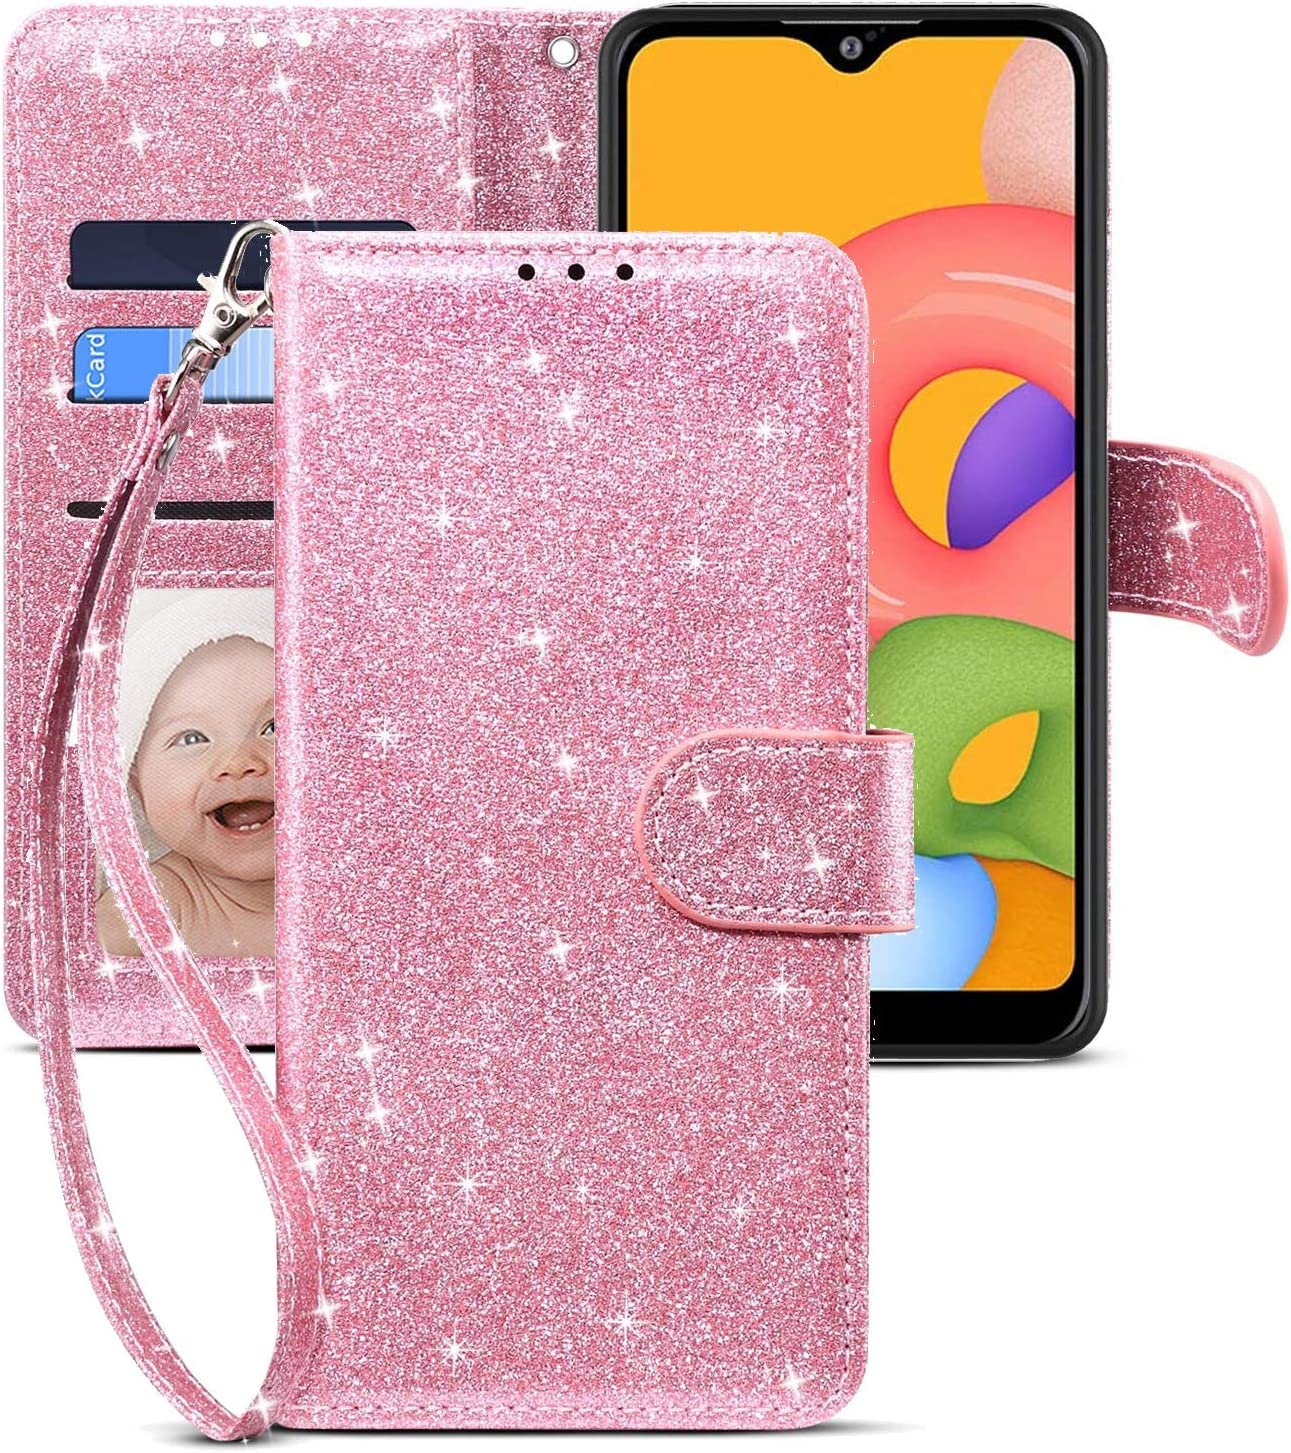 CHICASE Case for Galaxy A01,Samsung A01 Case,Folding Flip Glitter Bling Cute Leather Wallet Shockproof Protective Case with Kickstand Card Slots Wrist Strap Magnetic for Samsung Galaxy A01 (Pink)